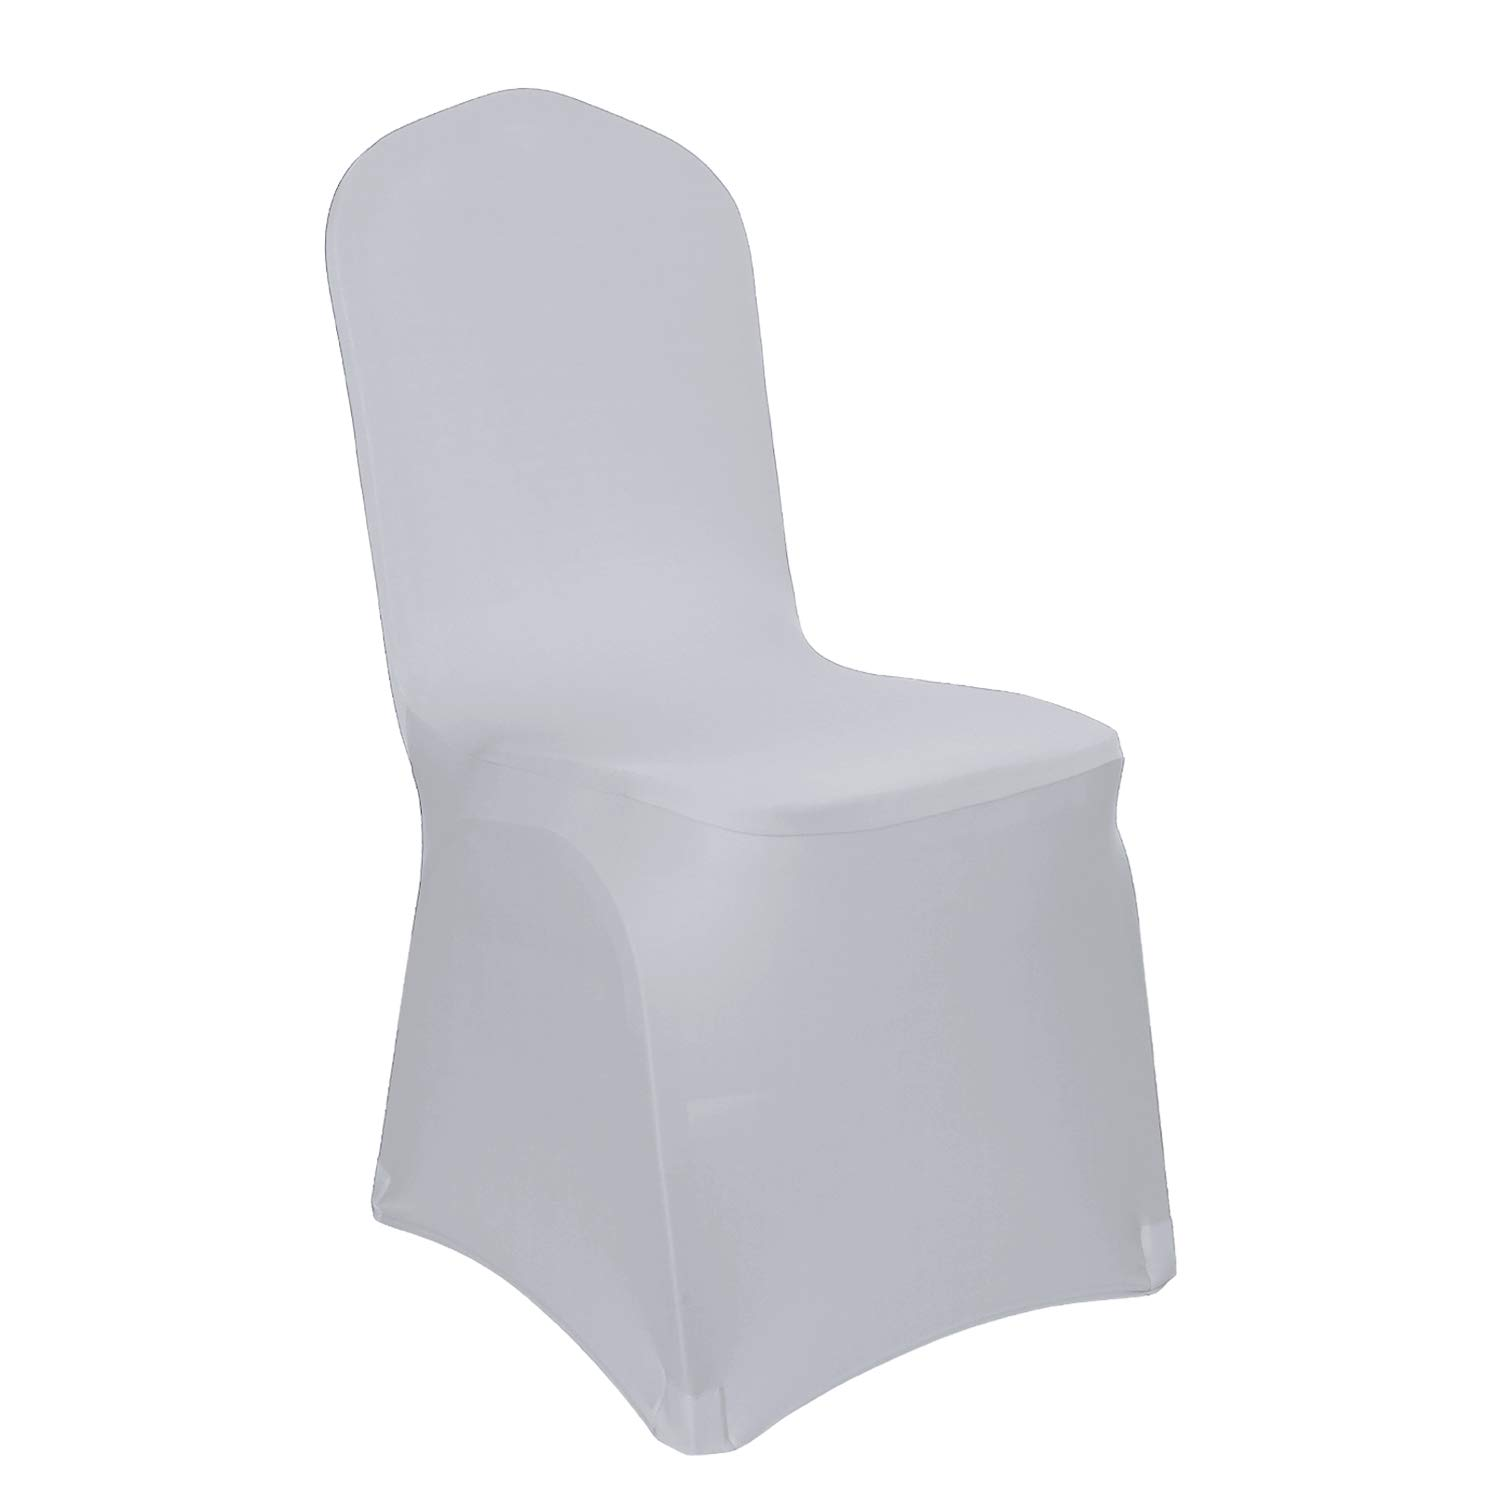 Plastic Dining Room Chair Covers: Clear Plastic Dining Room Chair Covers